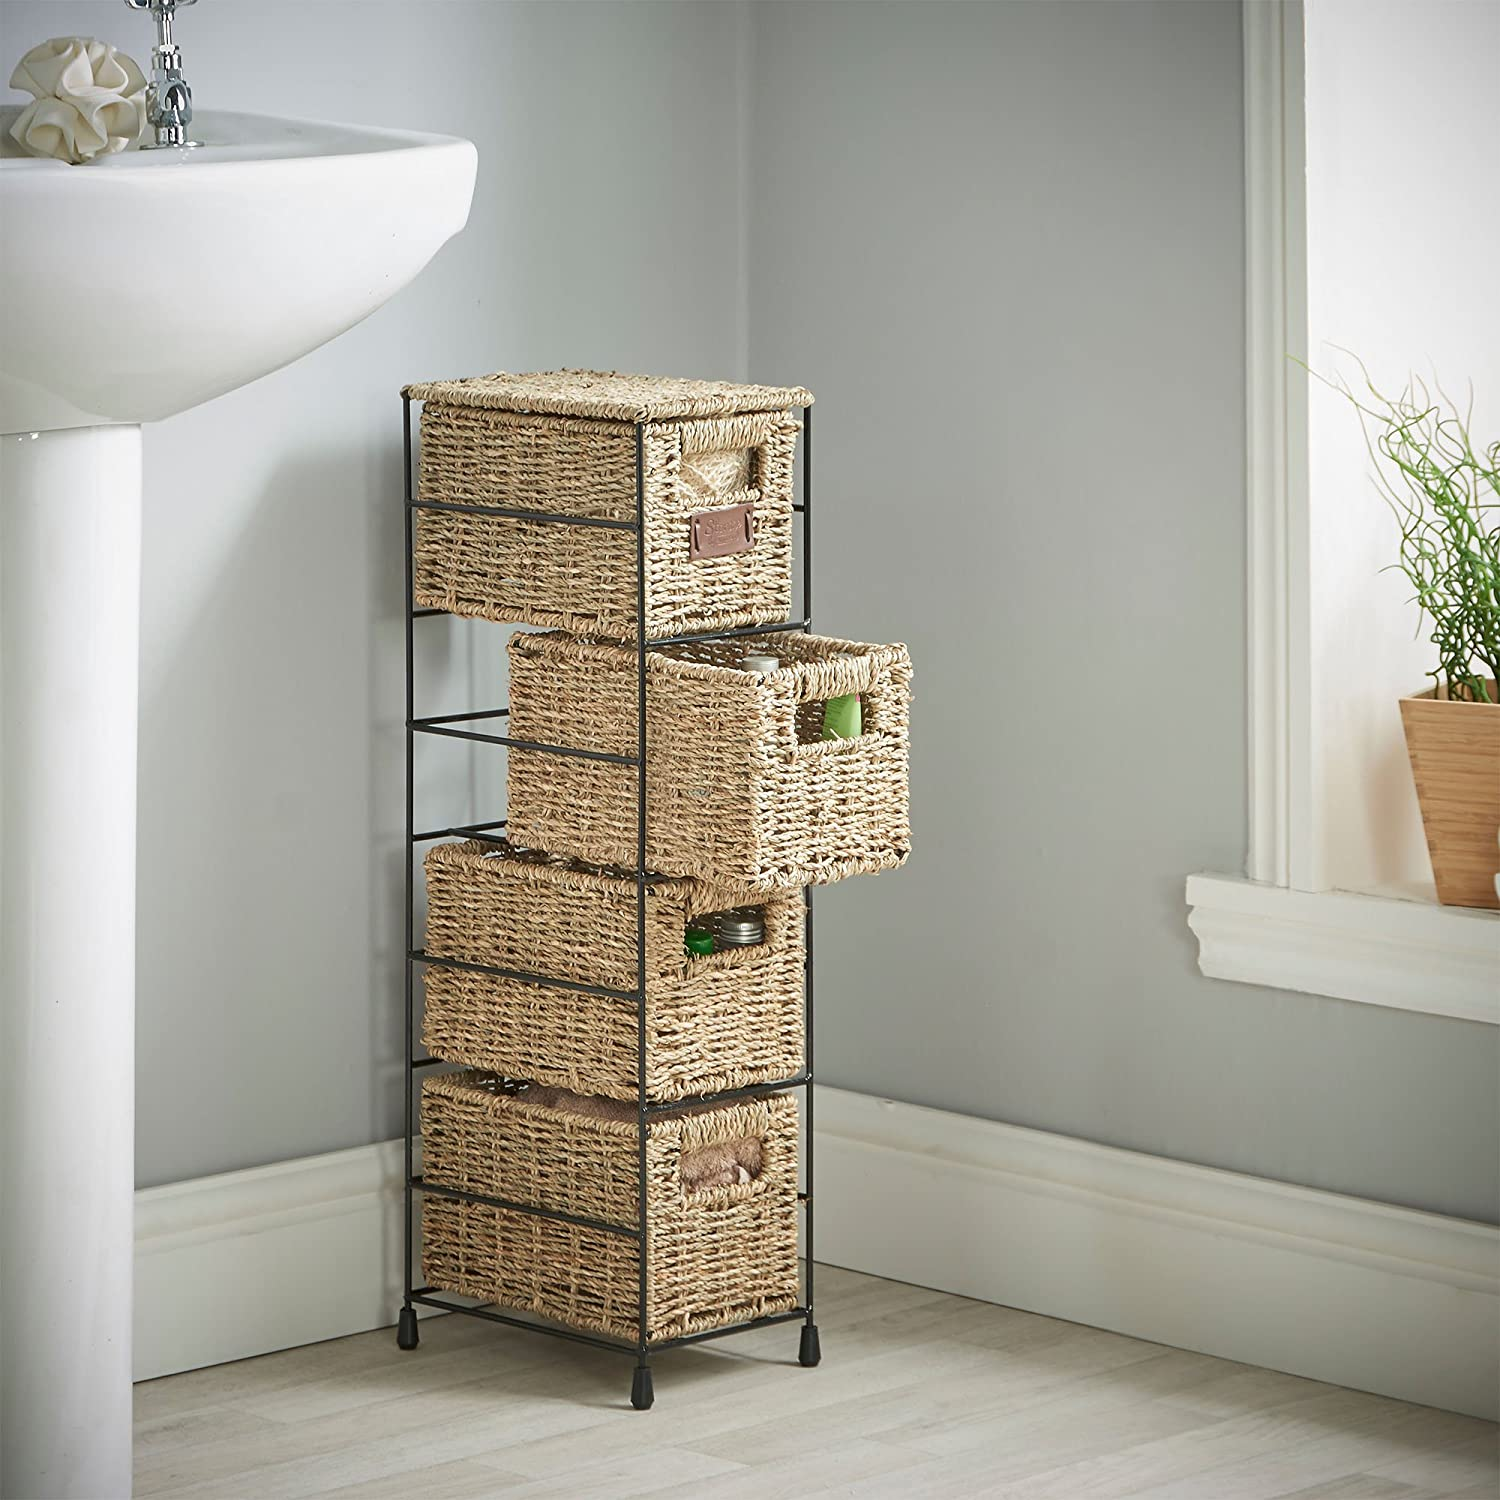 Superieur Amazon.com: VonHaus 4 Tier Small Seagrass Basket Storage Tower Unit With  Metal Frame   Ideal For Small Bathrooms U0026 Home Storage (H25.4 X W9.5 X  D6.7): Home ...